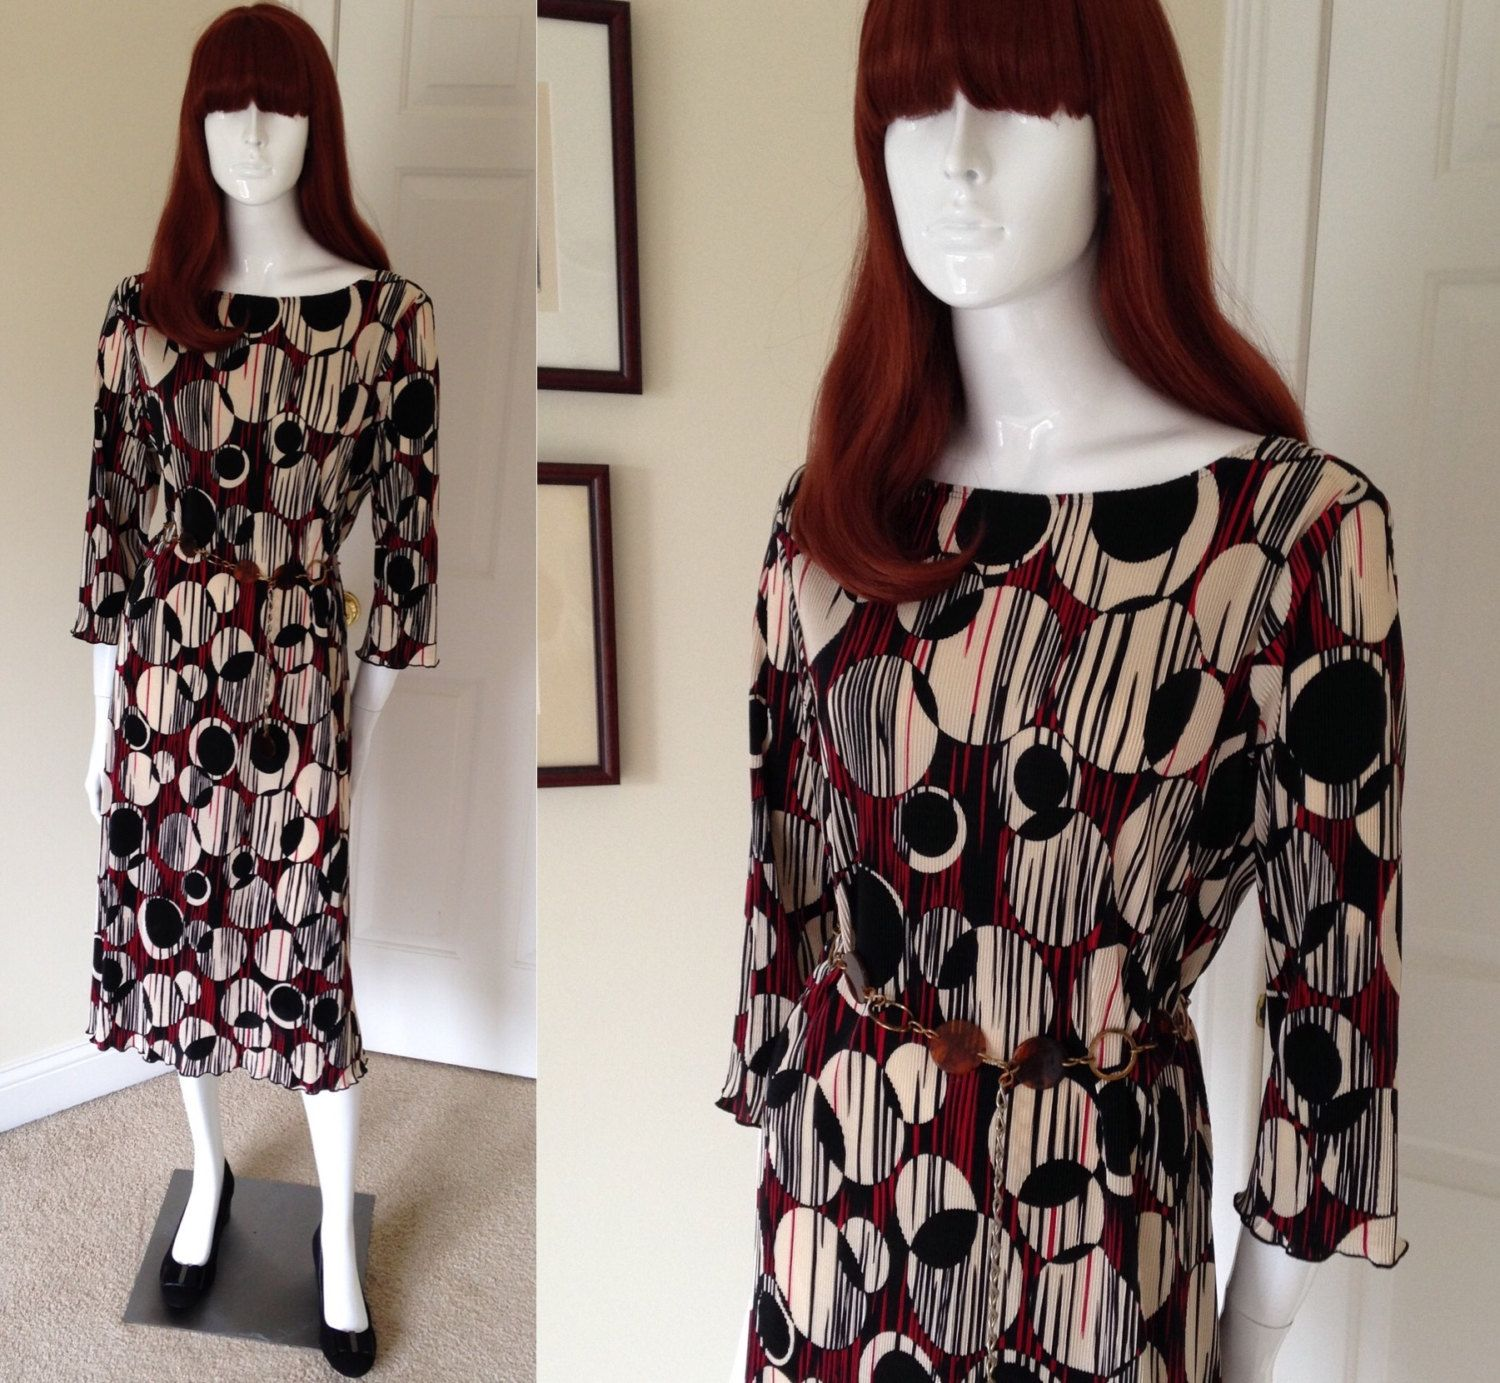 Us op art dress mid century red and black abstract print dress